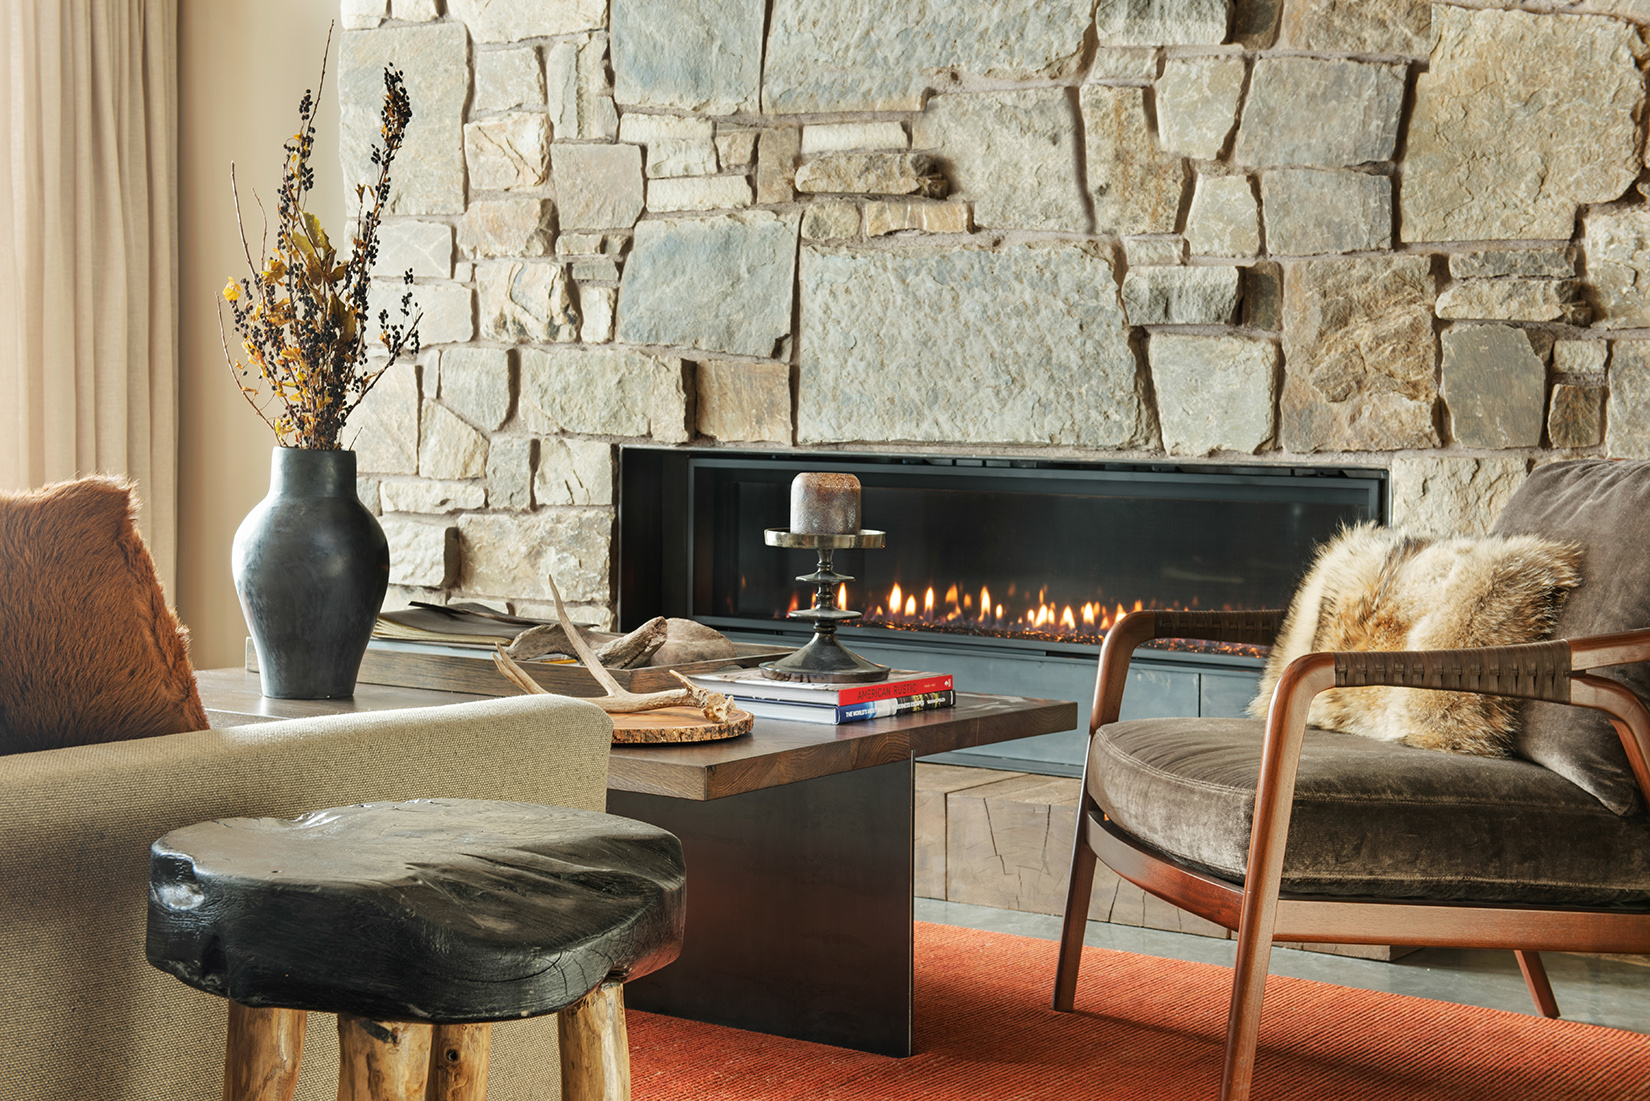 The modern fireplace adds to this cozy lower level sitting area.